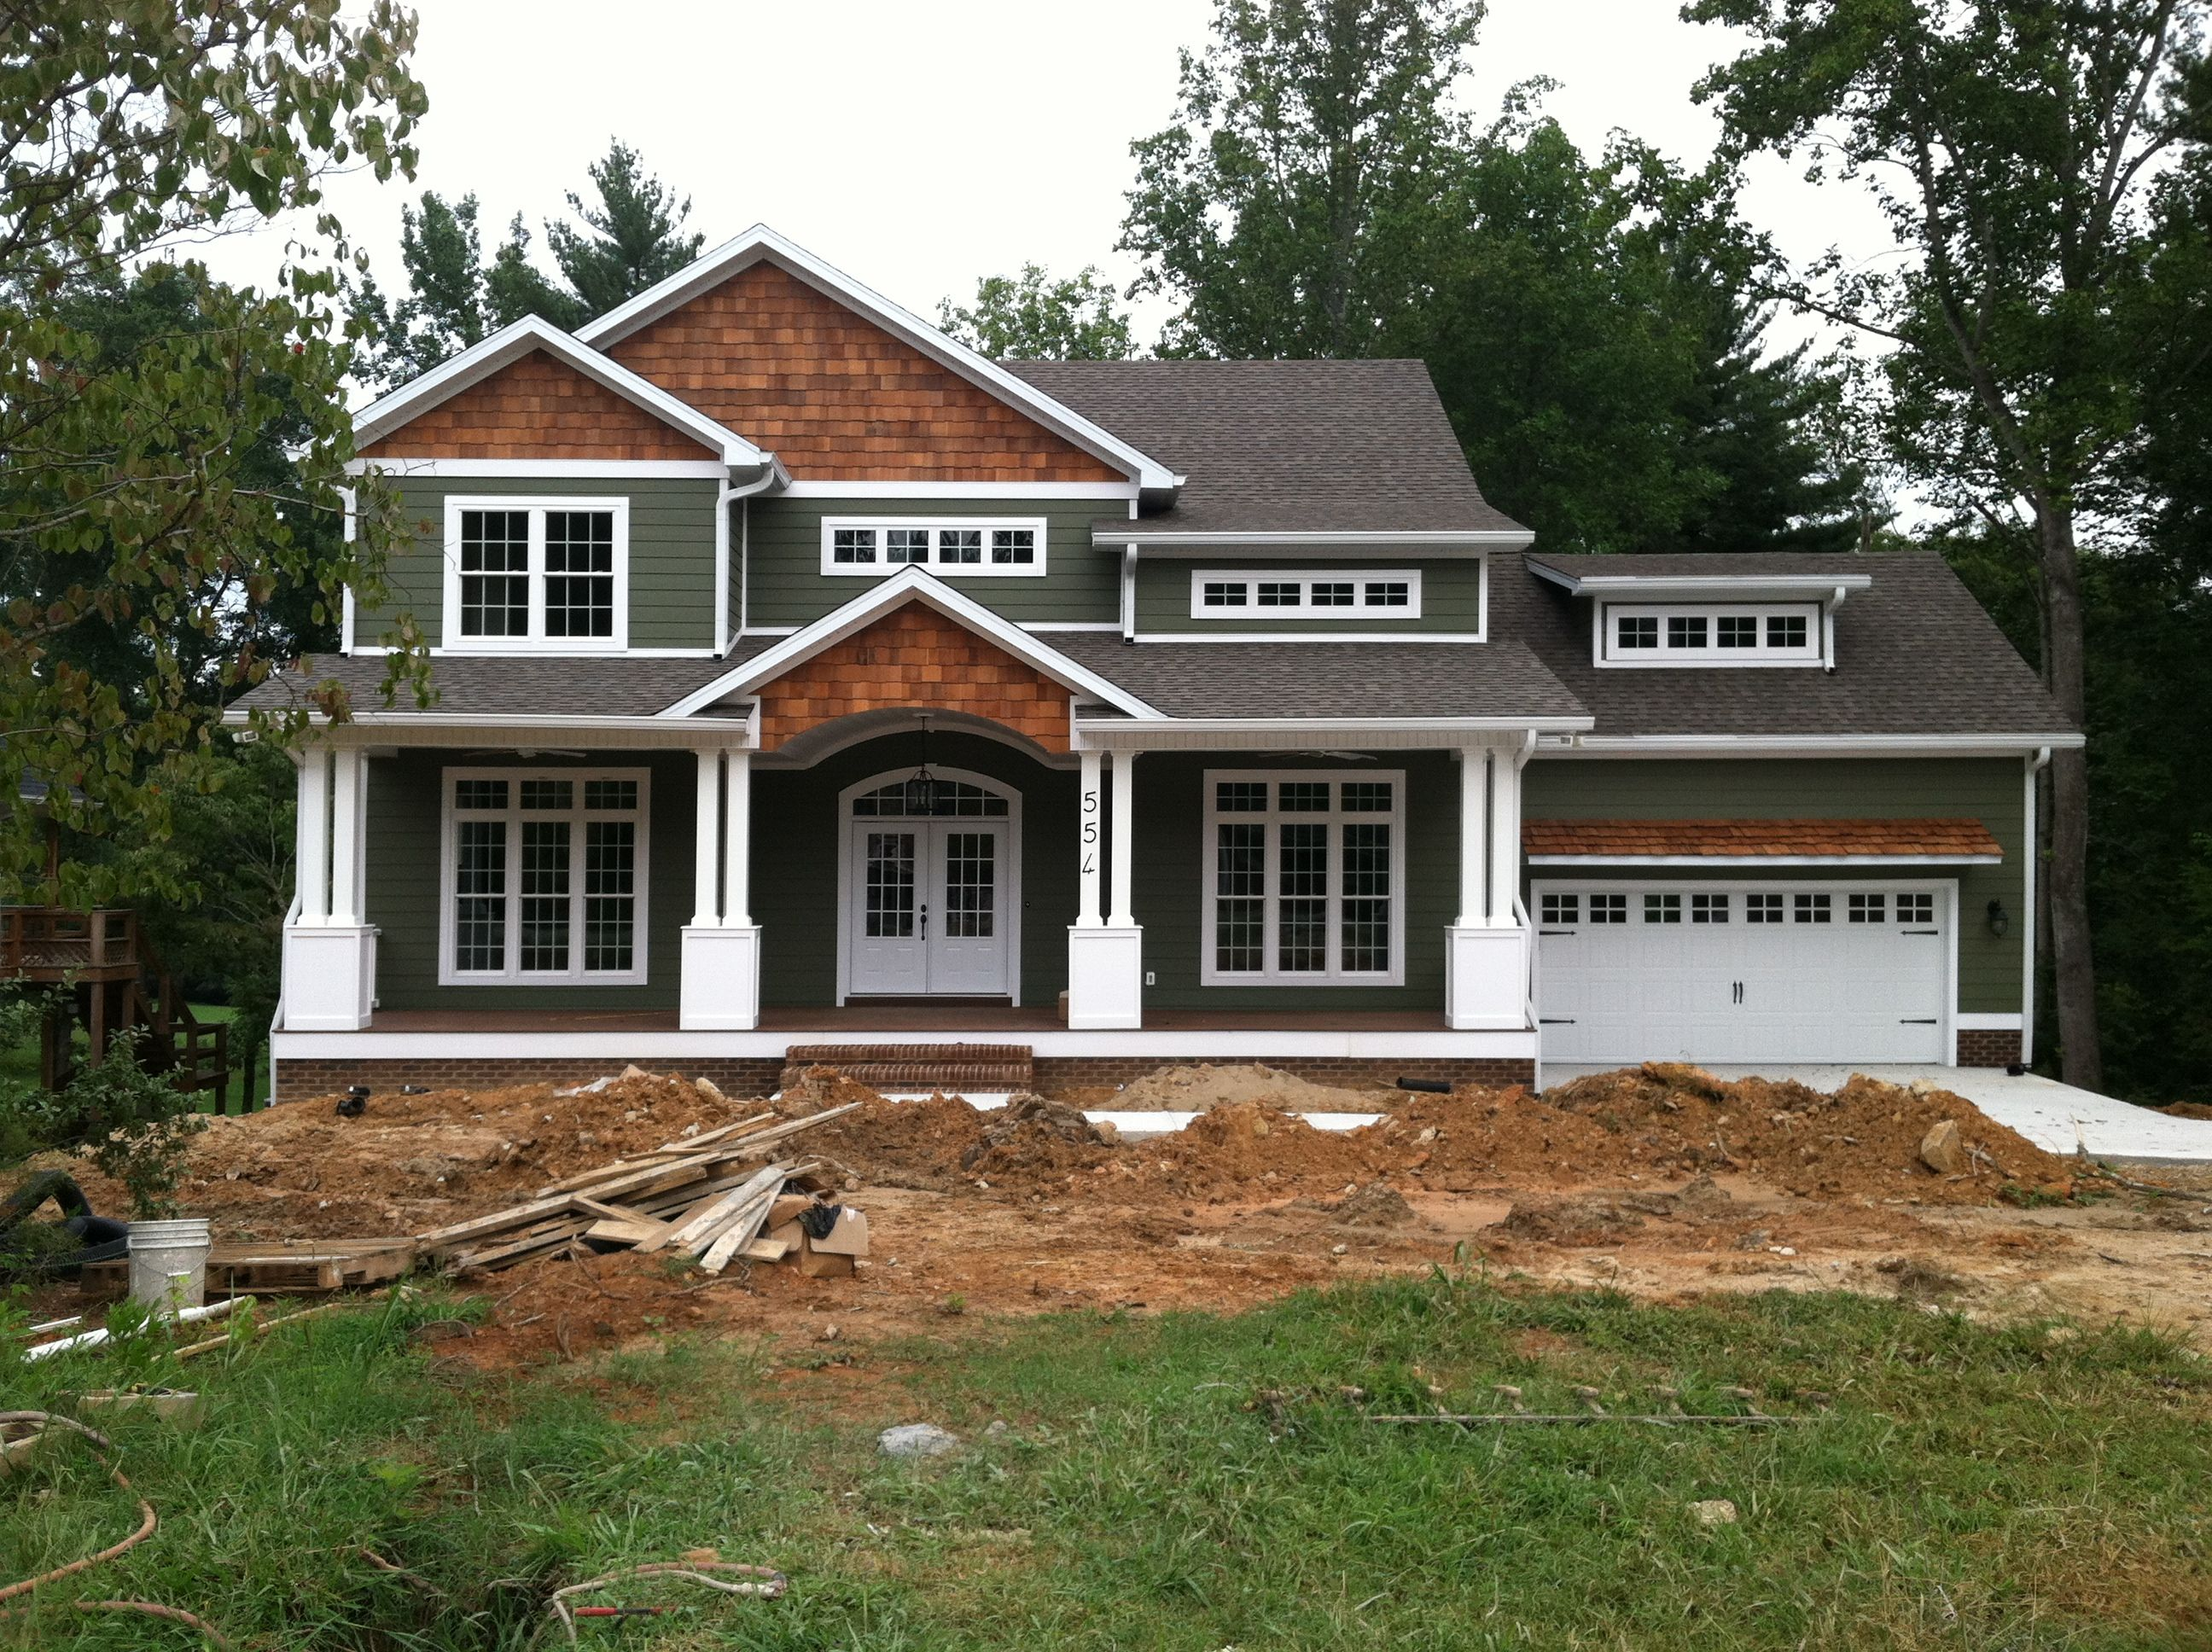 inspirational craftsman style hometurn the garage to the side